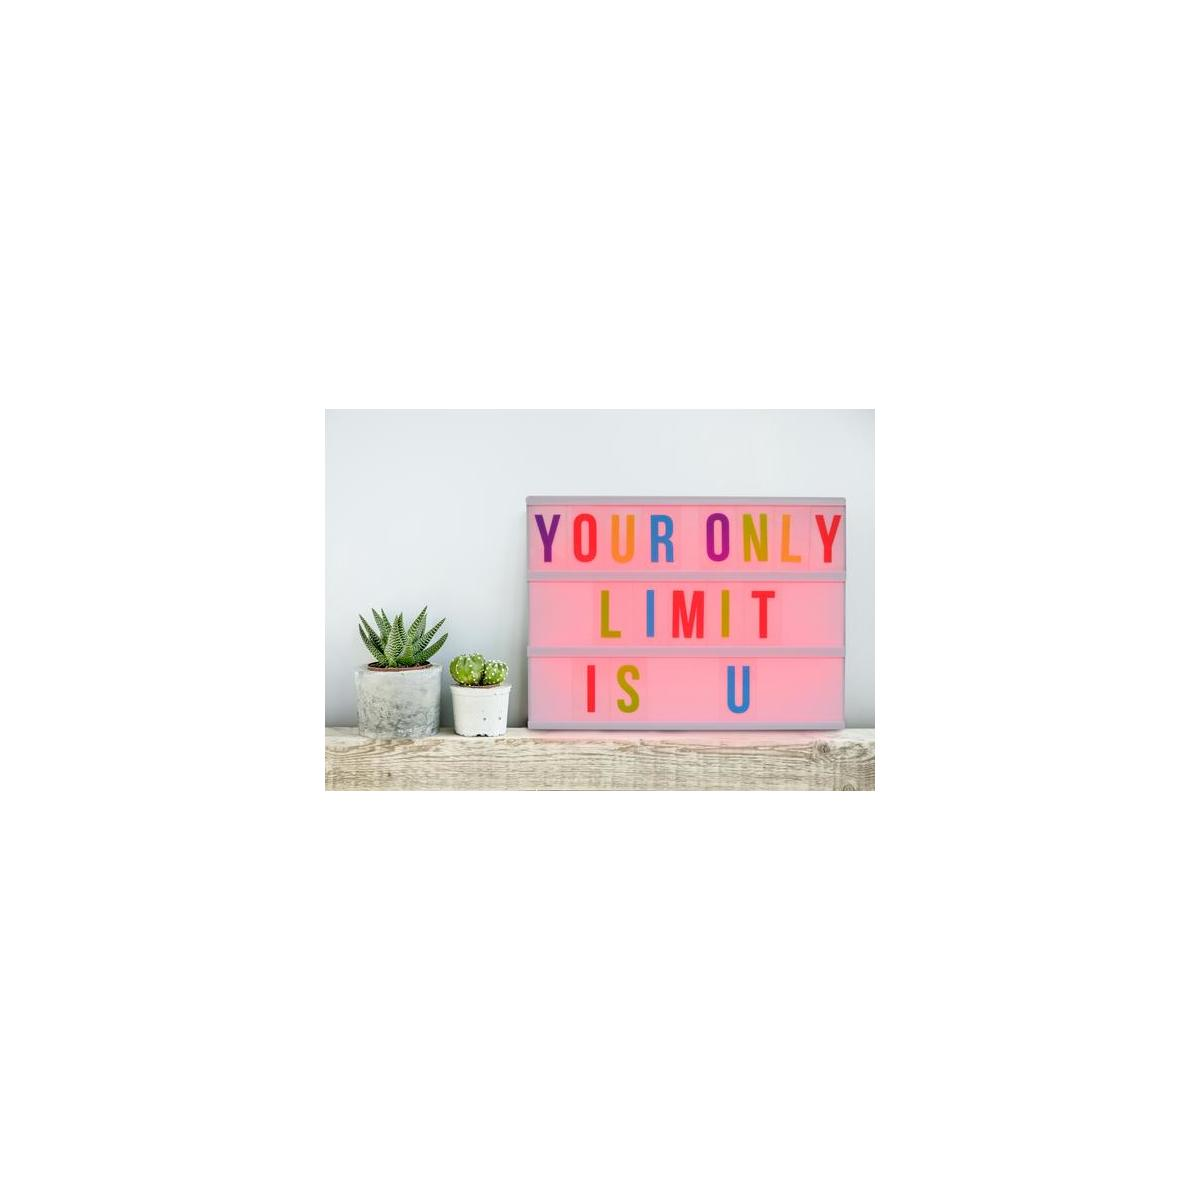 A4 Size DIY Board with 255 Black /& Colored Letters Numbers Symbols and Images Creative Marquee Lightbox For Decorative Party Sign Funtone Colors Cinema Light Box Changing Lighted Up White /& Color Led Cinematic Set